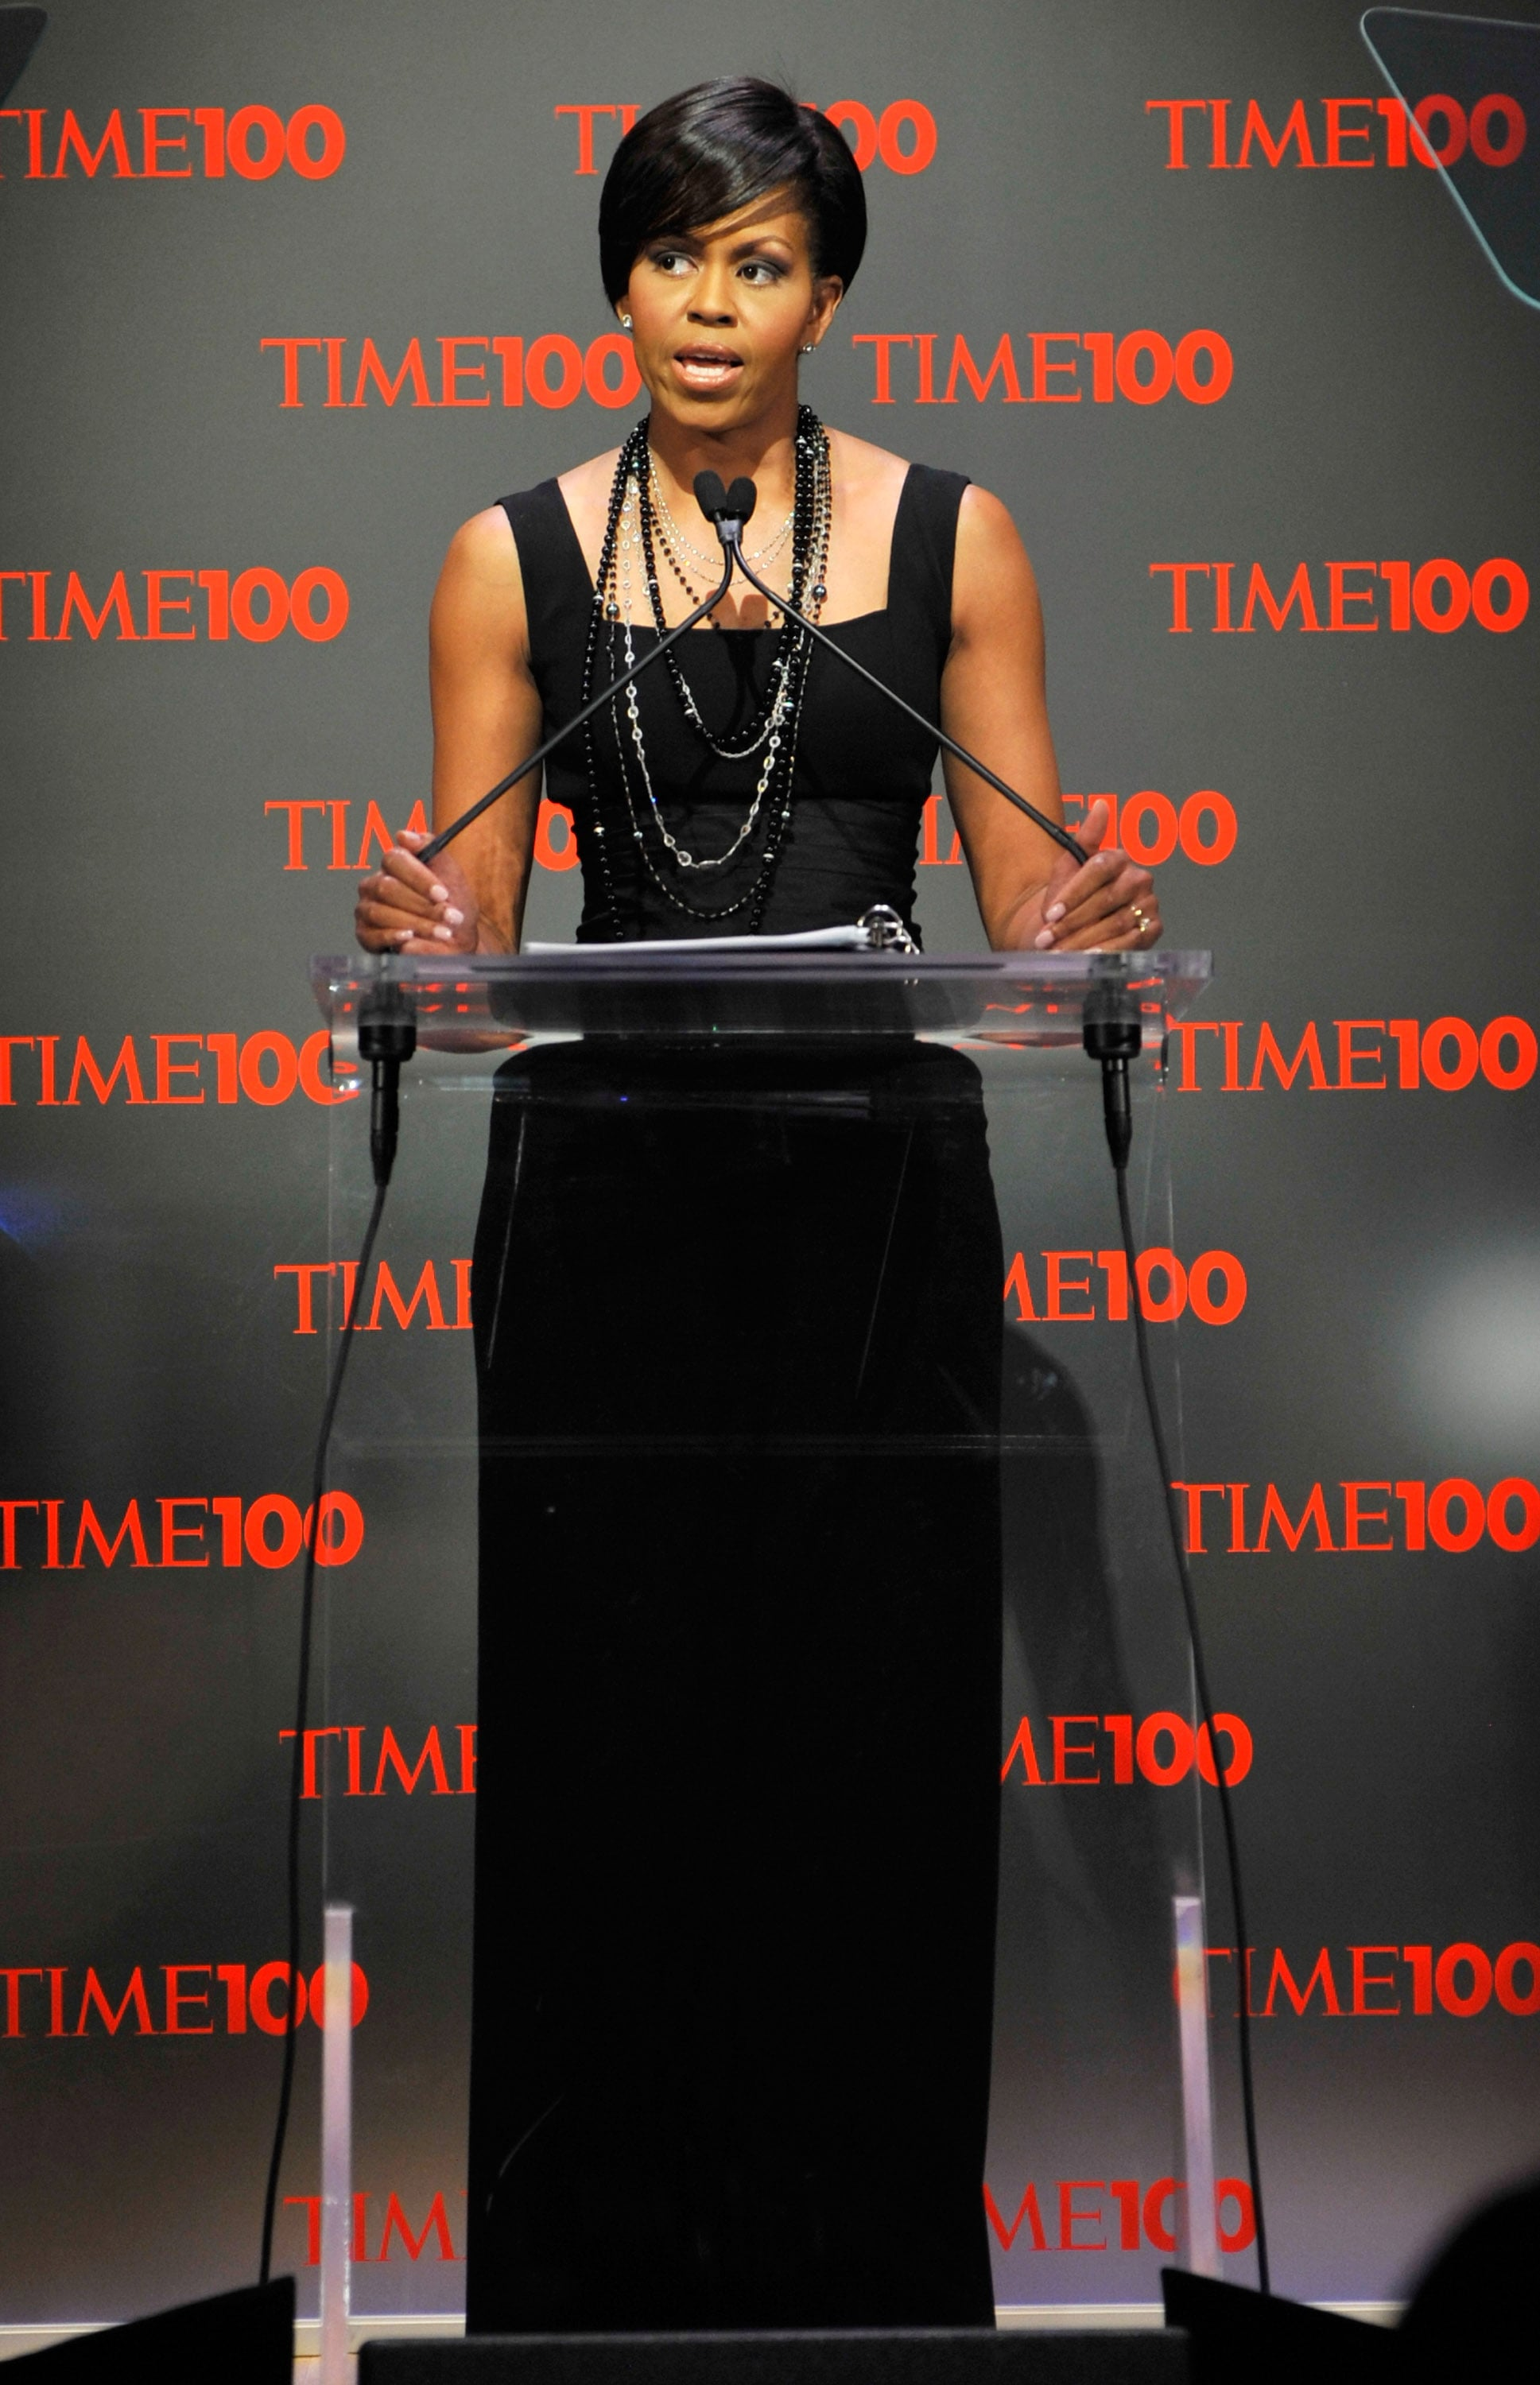 The first lady spoke at the Time 100 gala in 2009, wearing a black Michael Kors gown cinched with a Peter Soronen corset belt.